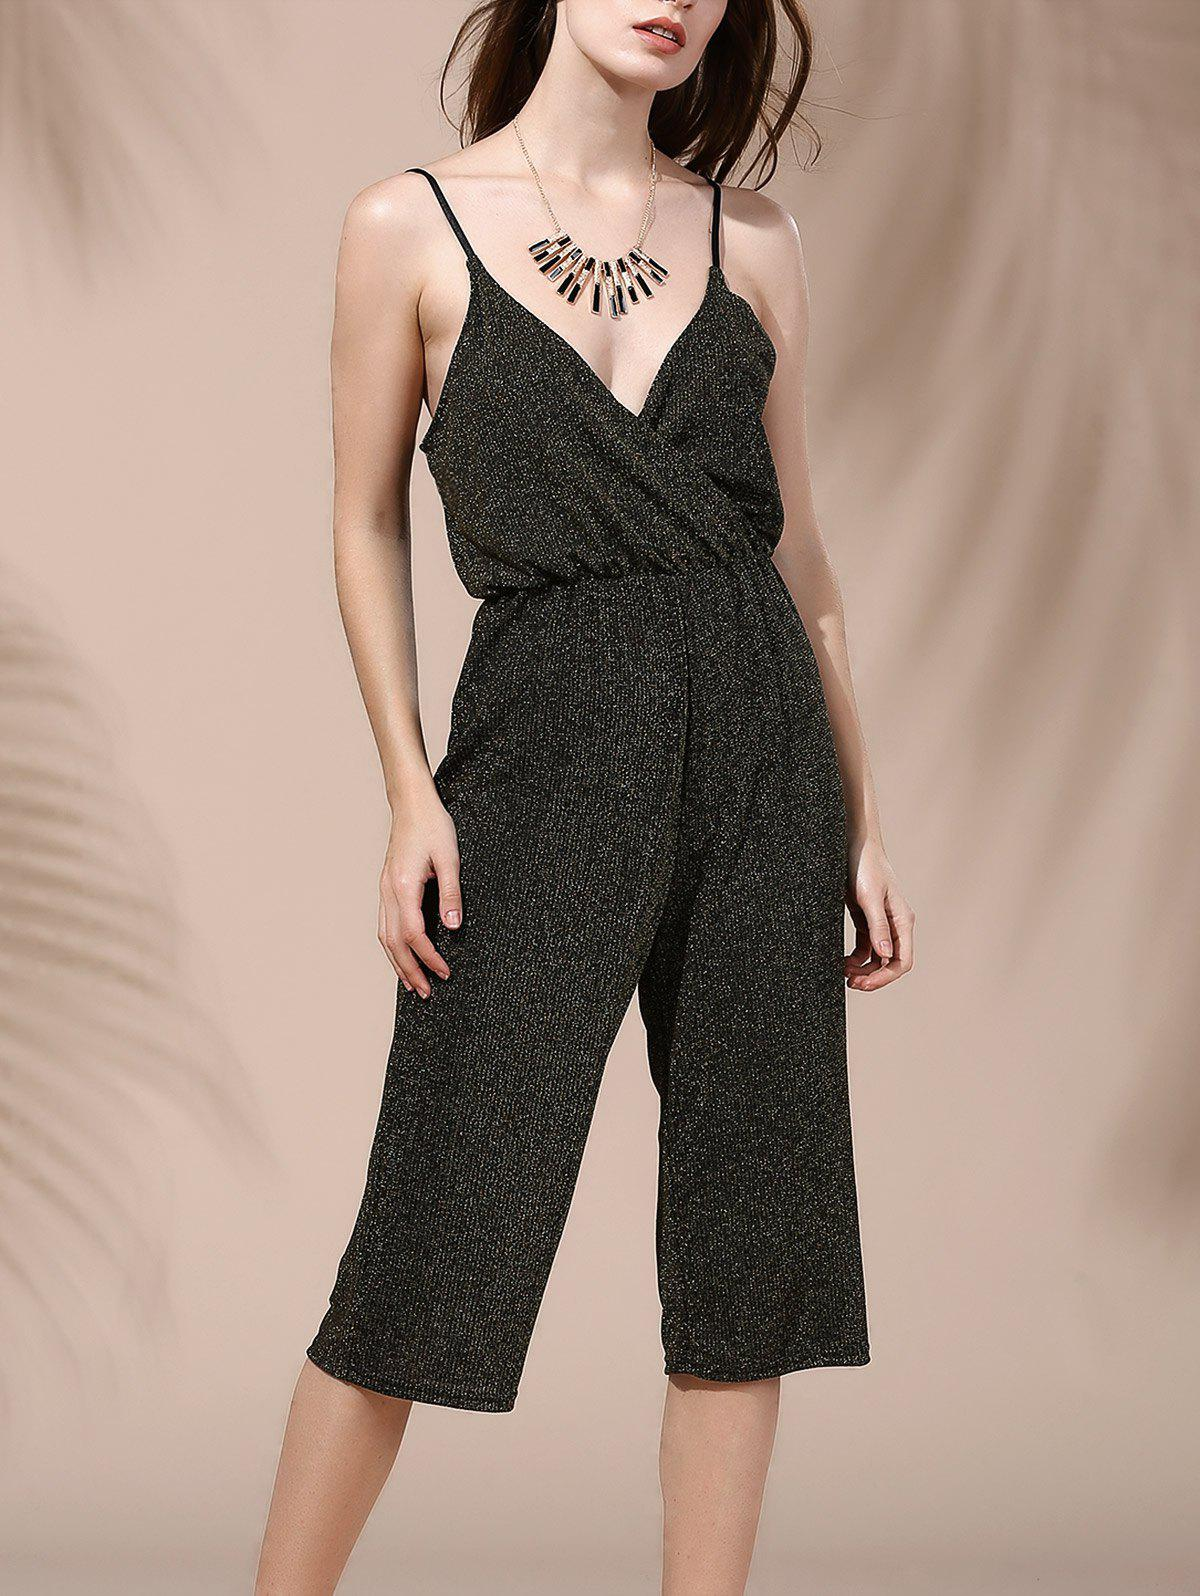 Alluring Backless Plunging Neck Solid Color Women's Jumpsuit